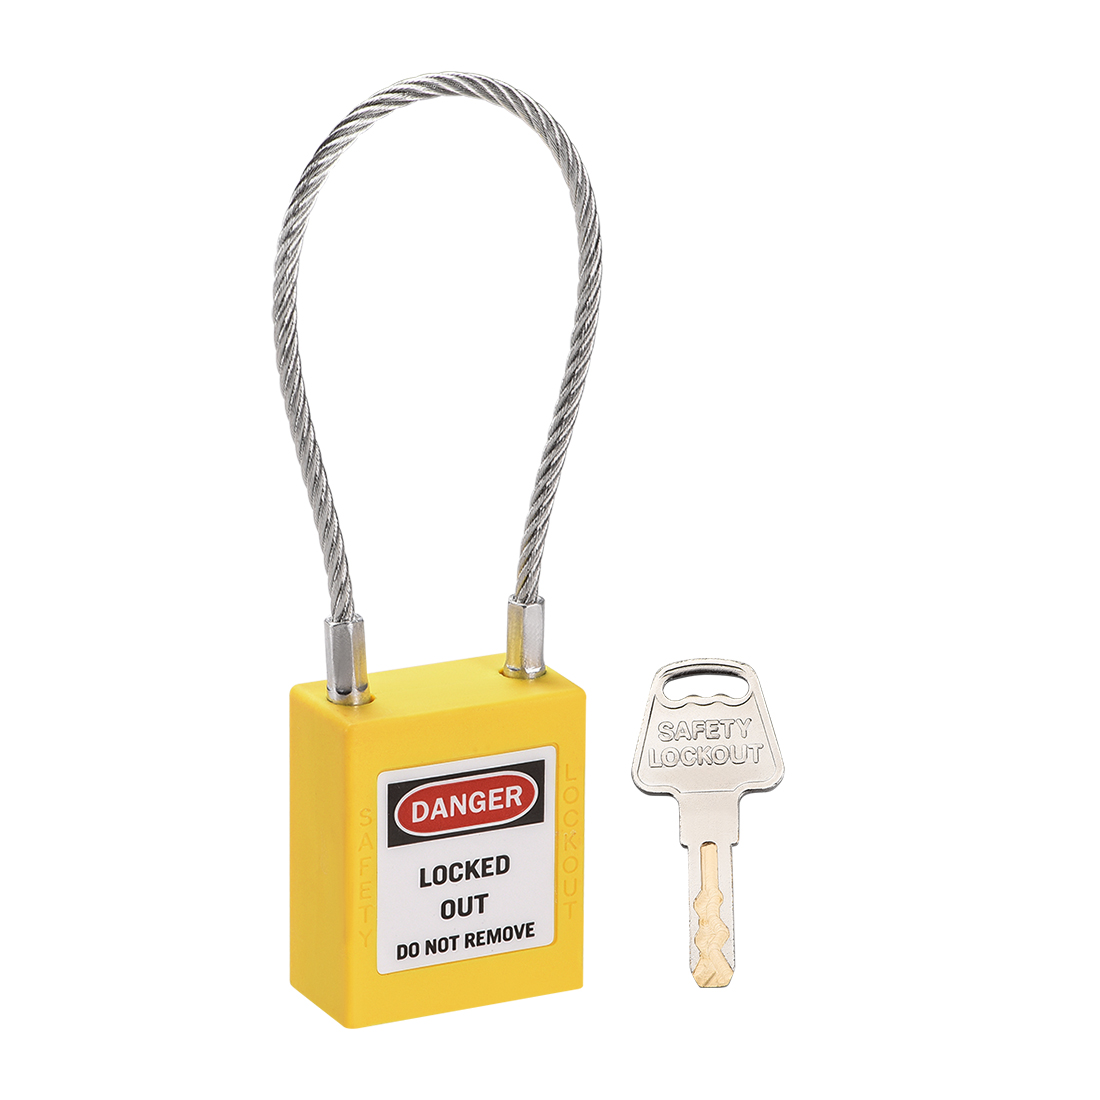 Lockout Tagout Locks 3.3 Inch Shackle Key Alike Safety Padlock Plastic Yellow